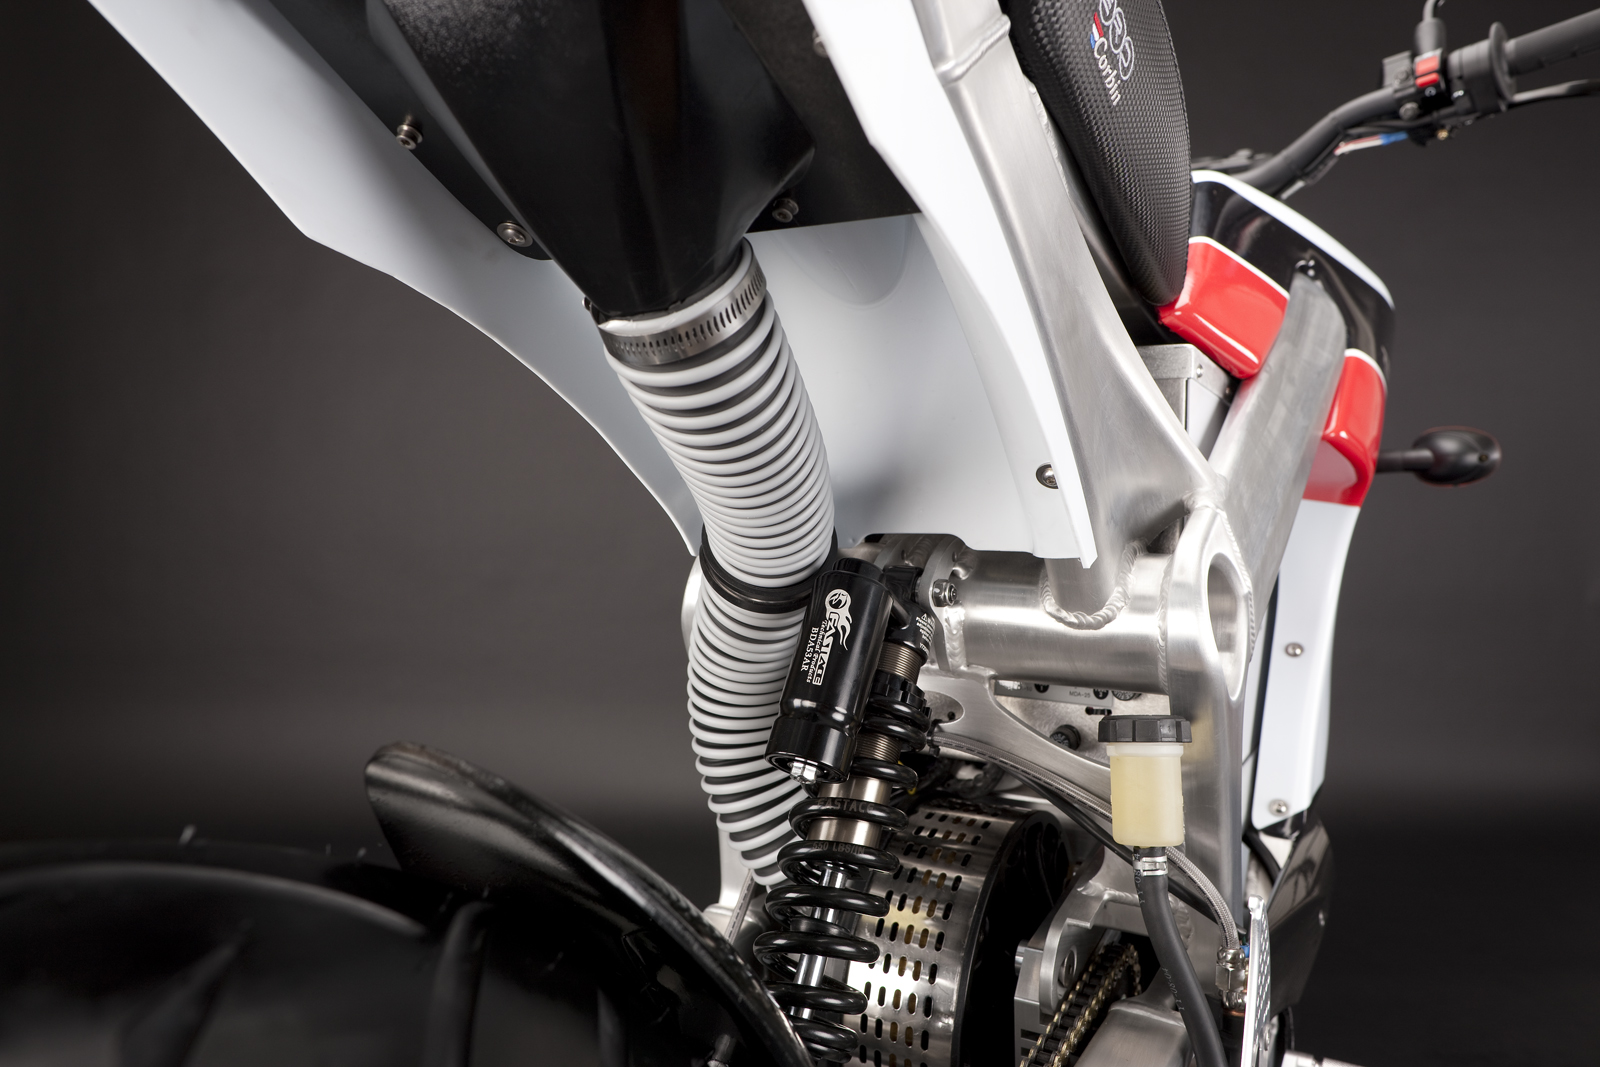 '.2010 Zero S Electric Motorcycle: Air Induction.'